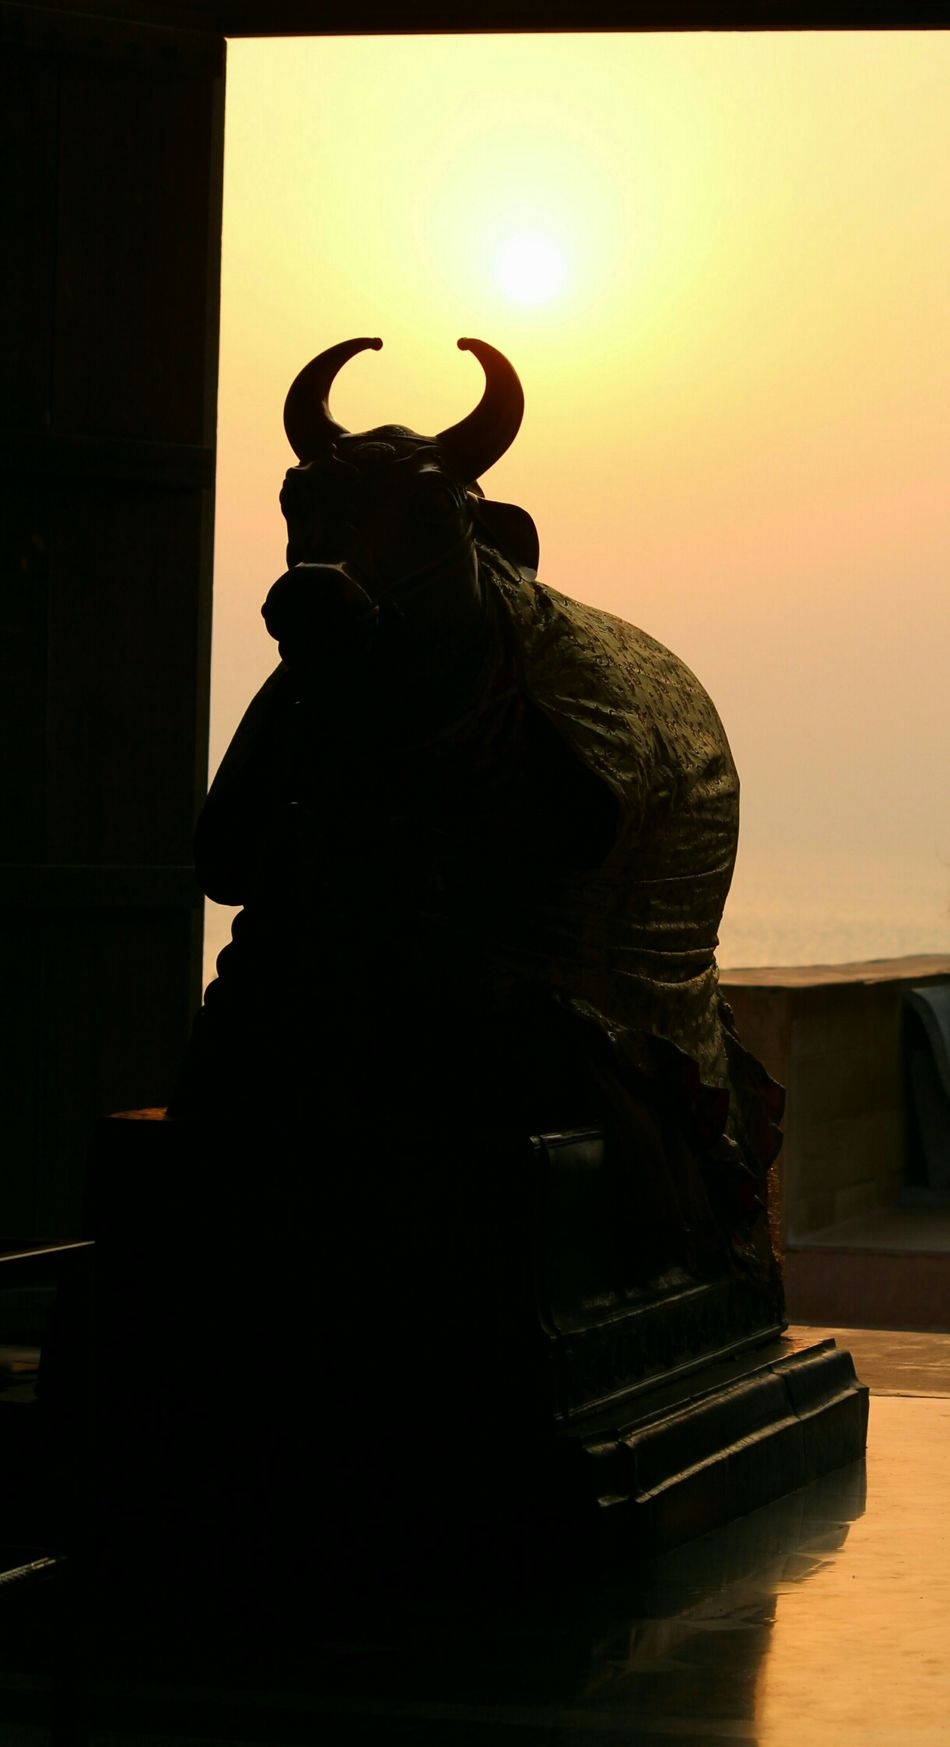 Silhouette of Nandi : In Hindu Religion , Nandi , नन्दि, , நந்தி, ನಂದಿ, న౦ది,  ନନ୍ଦି‎‎) is the name for the bull which serves as the mount of the Lord Shiva and as the gatekeeper of Shiva and Parvati. Nandi Bull Silhouette Nandhi Shivan OmNamahShivaya Hinduism Hindu Temple Hindu Gods Hindu Culture India Indian Culture  EyeEm Best Shots EyeEm Eyeem India INDIAN TRADITION Gujarat Gujarattourism Photographic Memory Travel Travel Diaries Incredible India